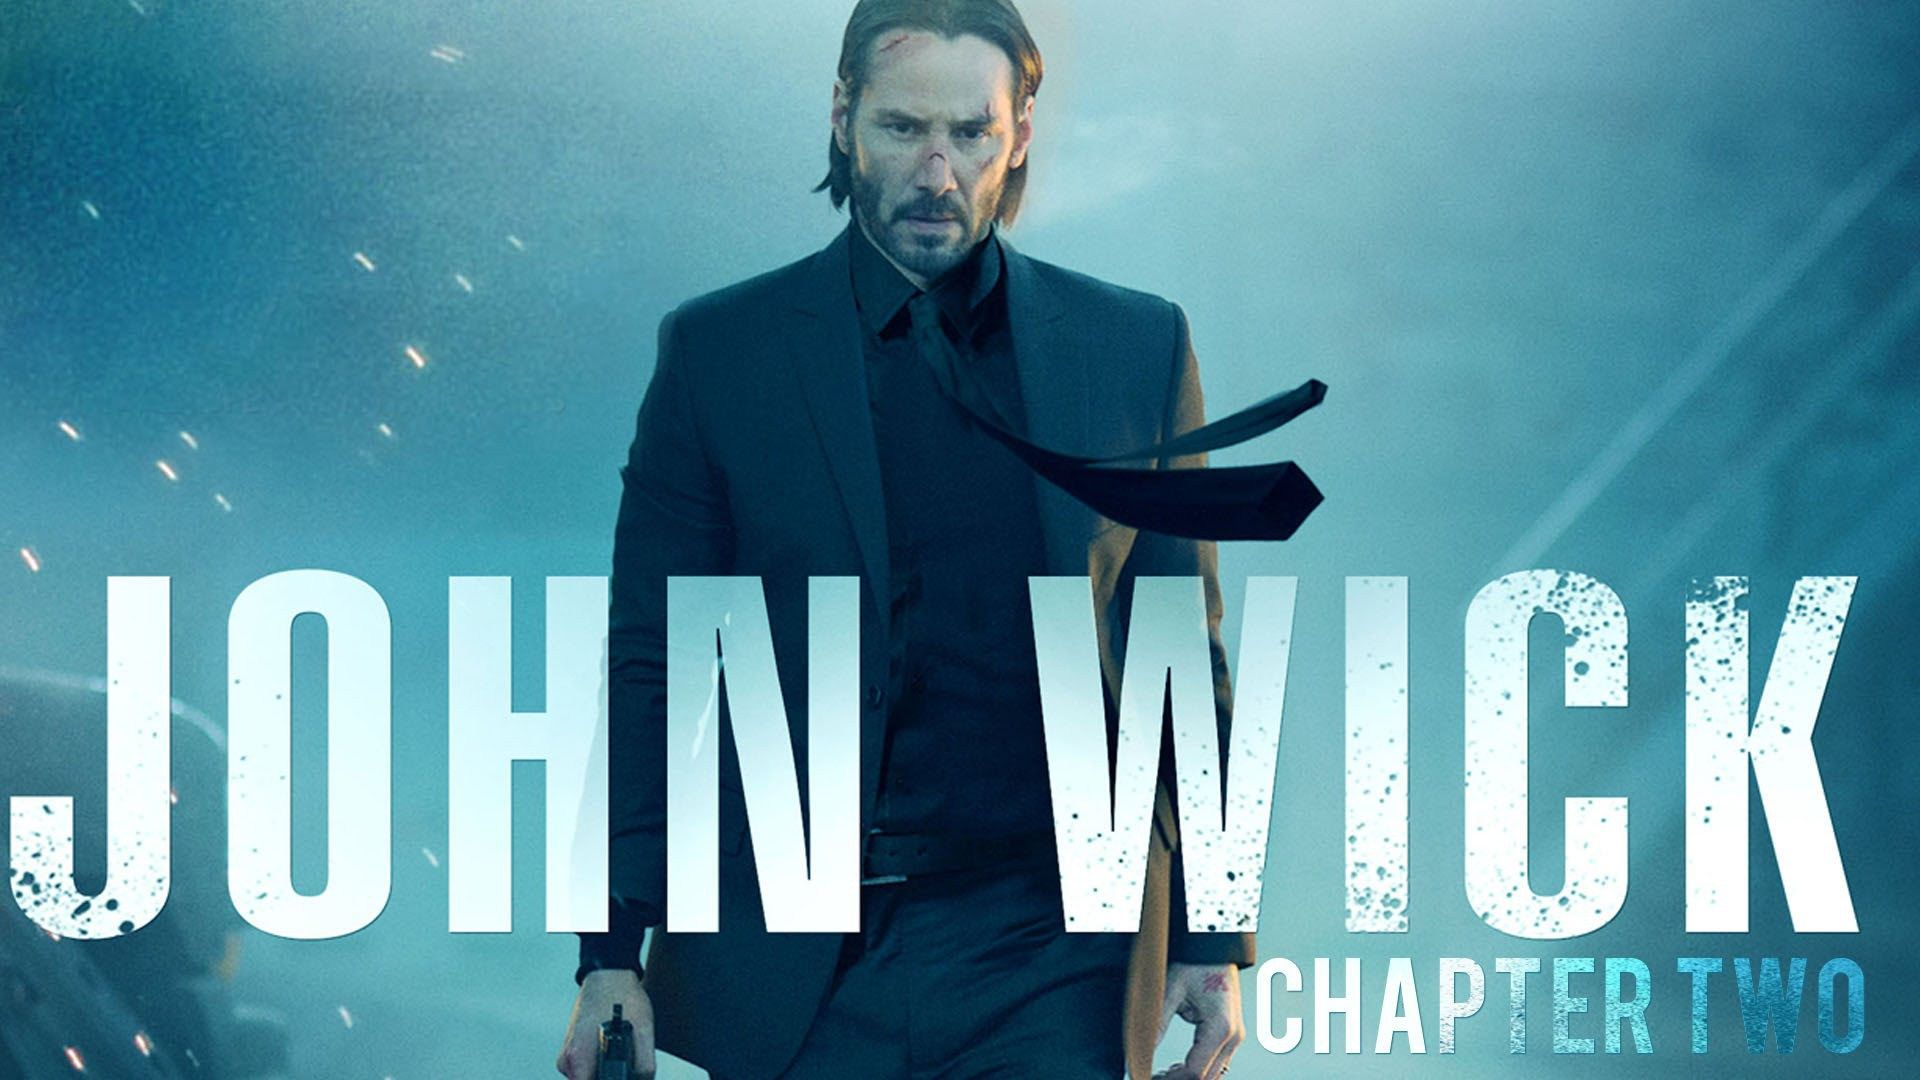 John Wick Chapter 2 Hd Wallpapers 6 Cosas Que Ponerse